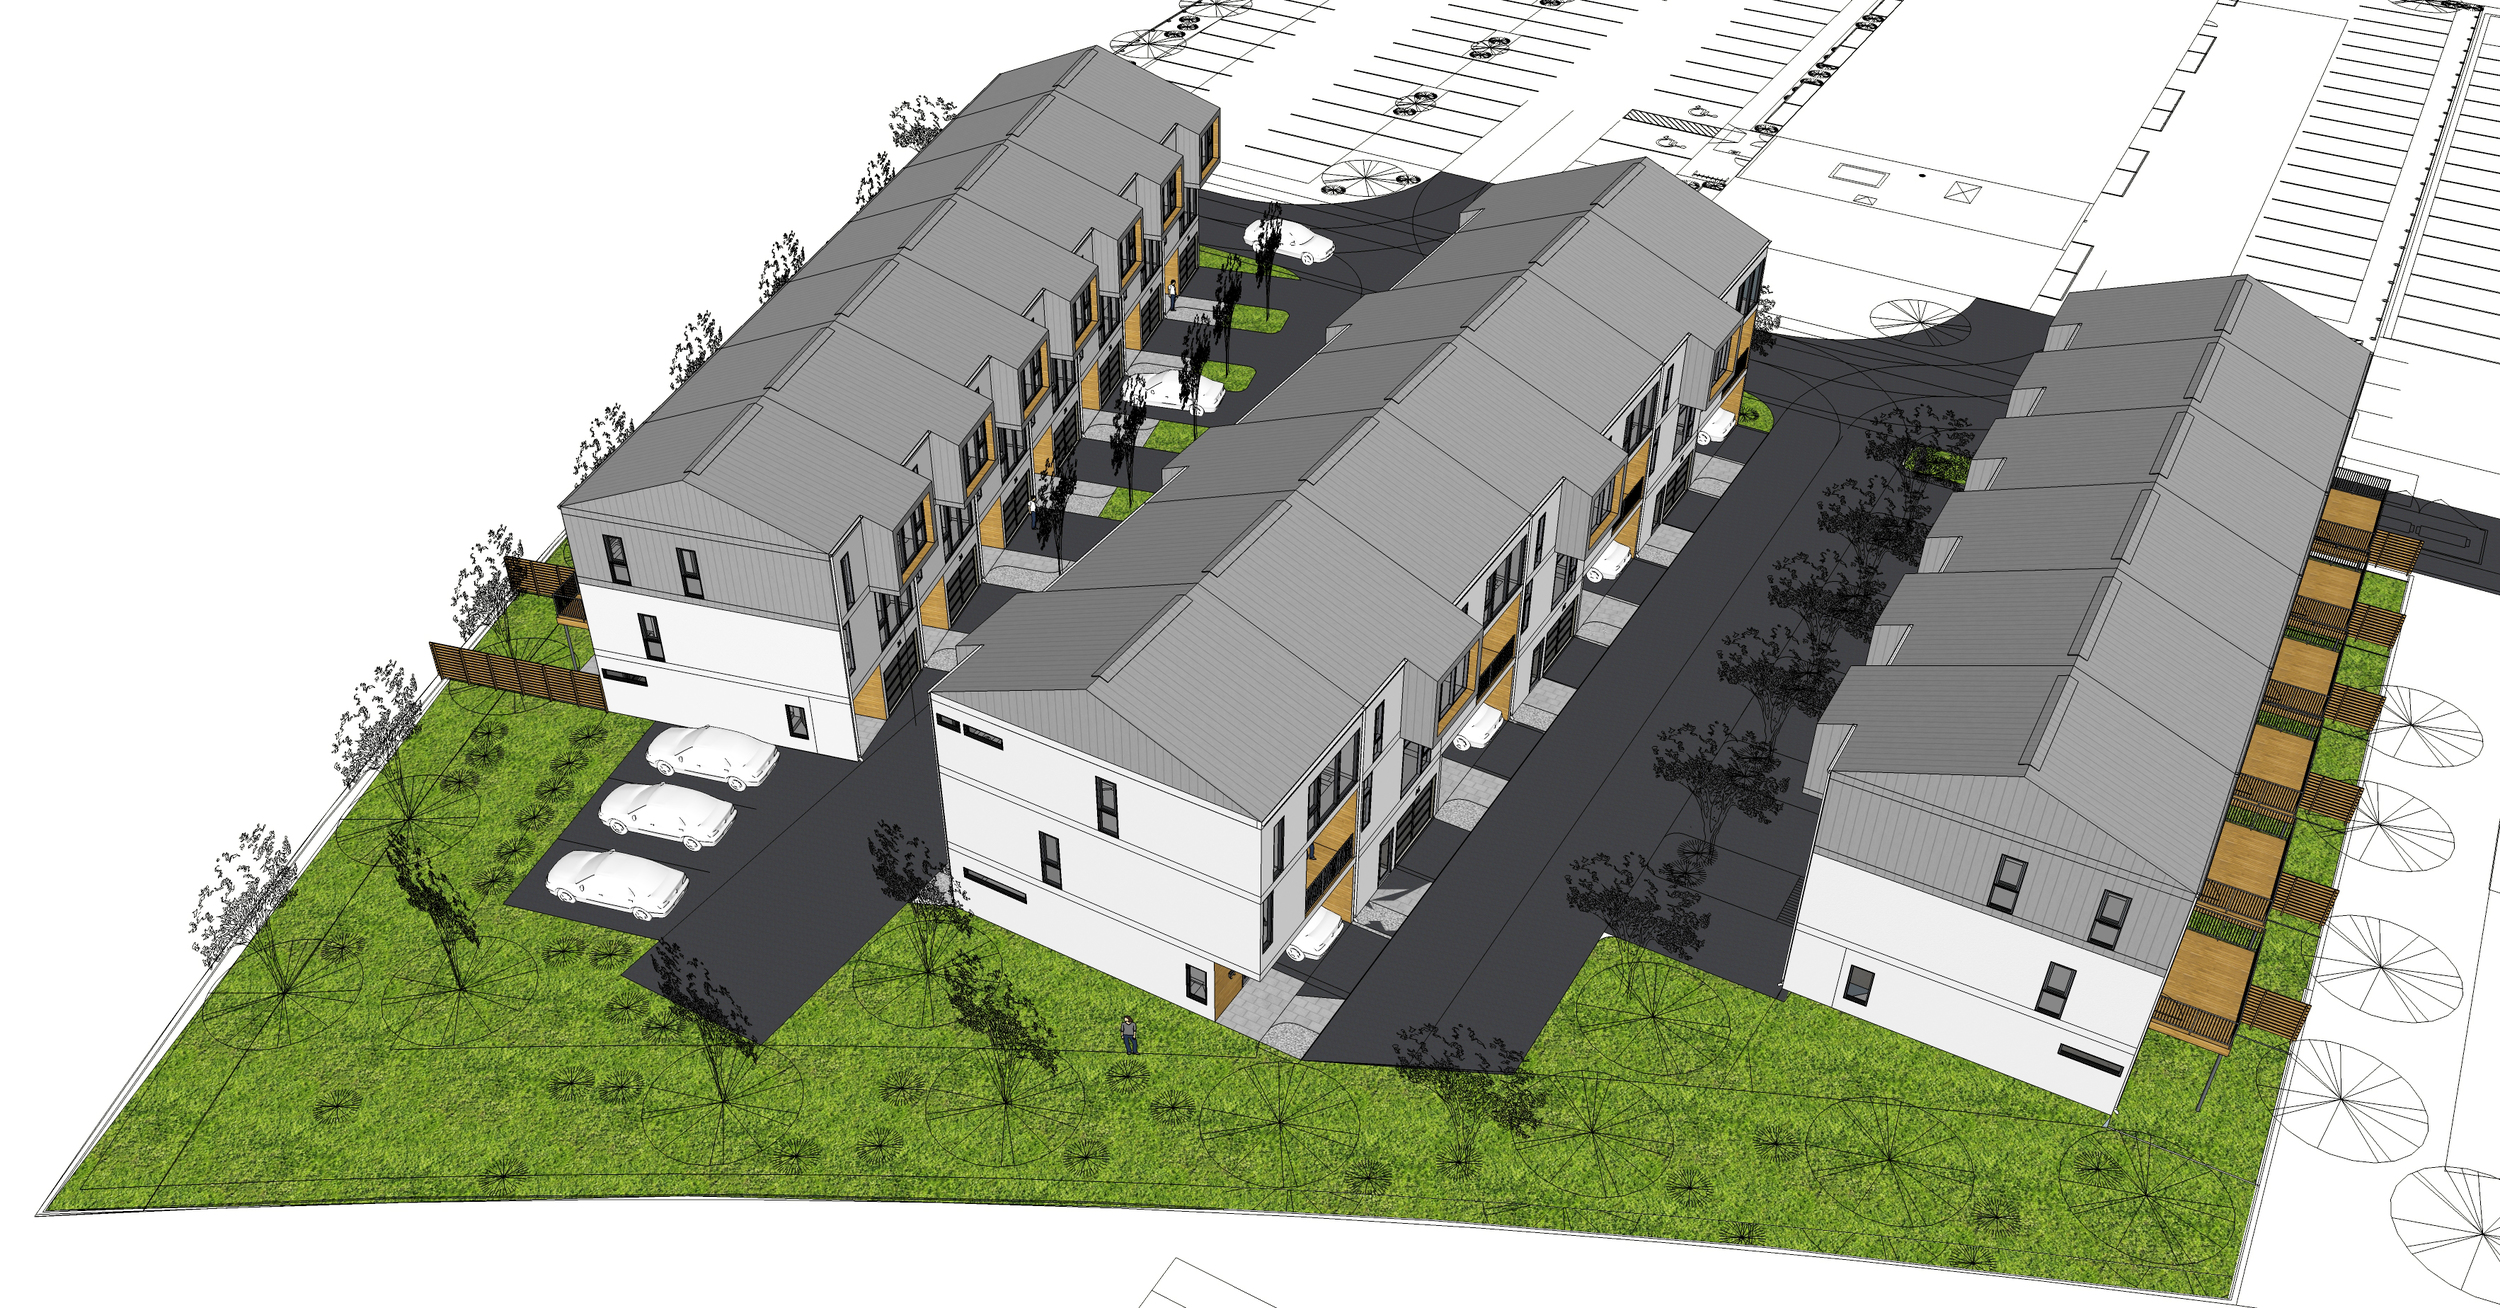 2013_12_Townhouses_perspective-5.jpg